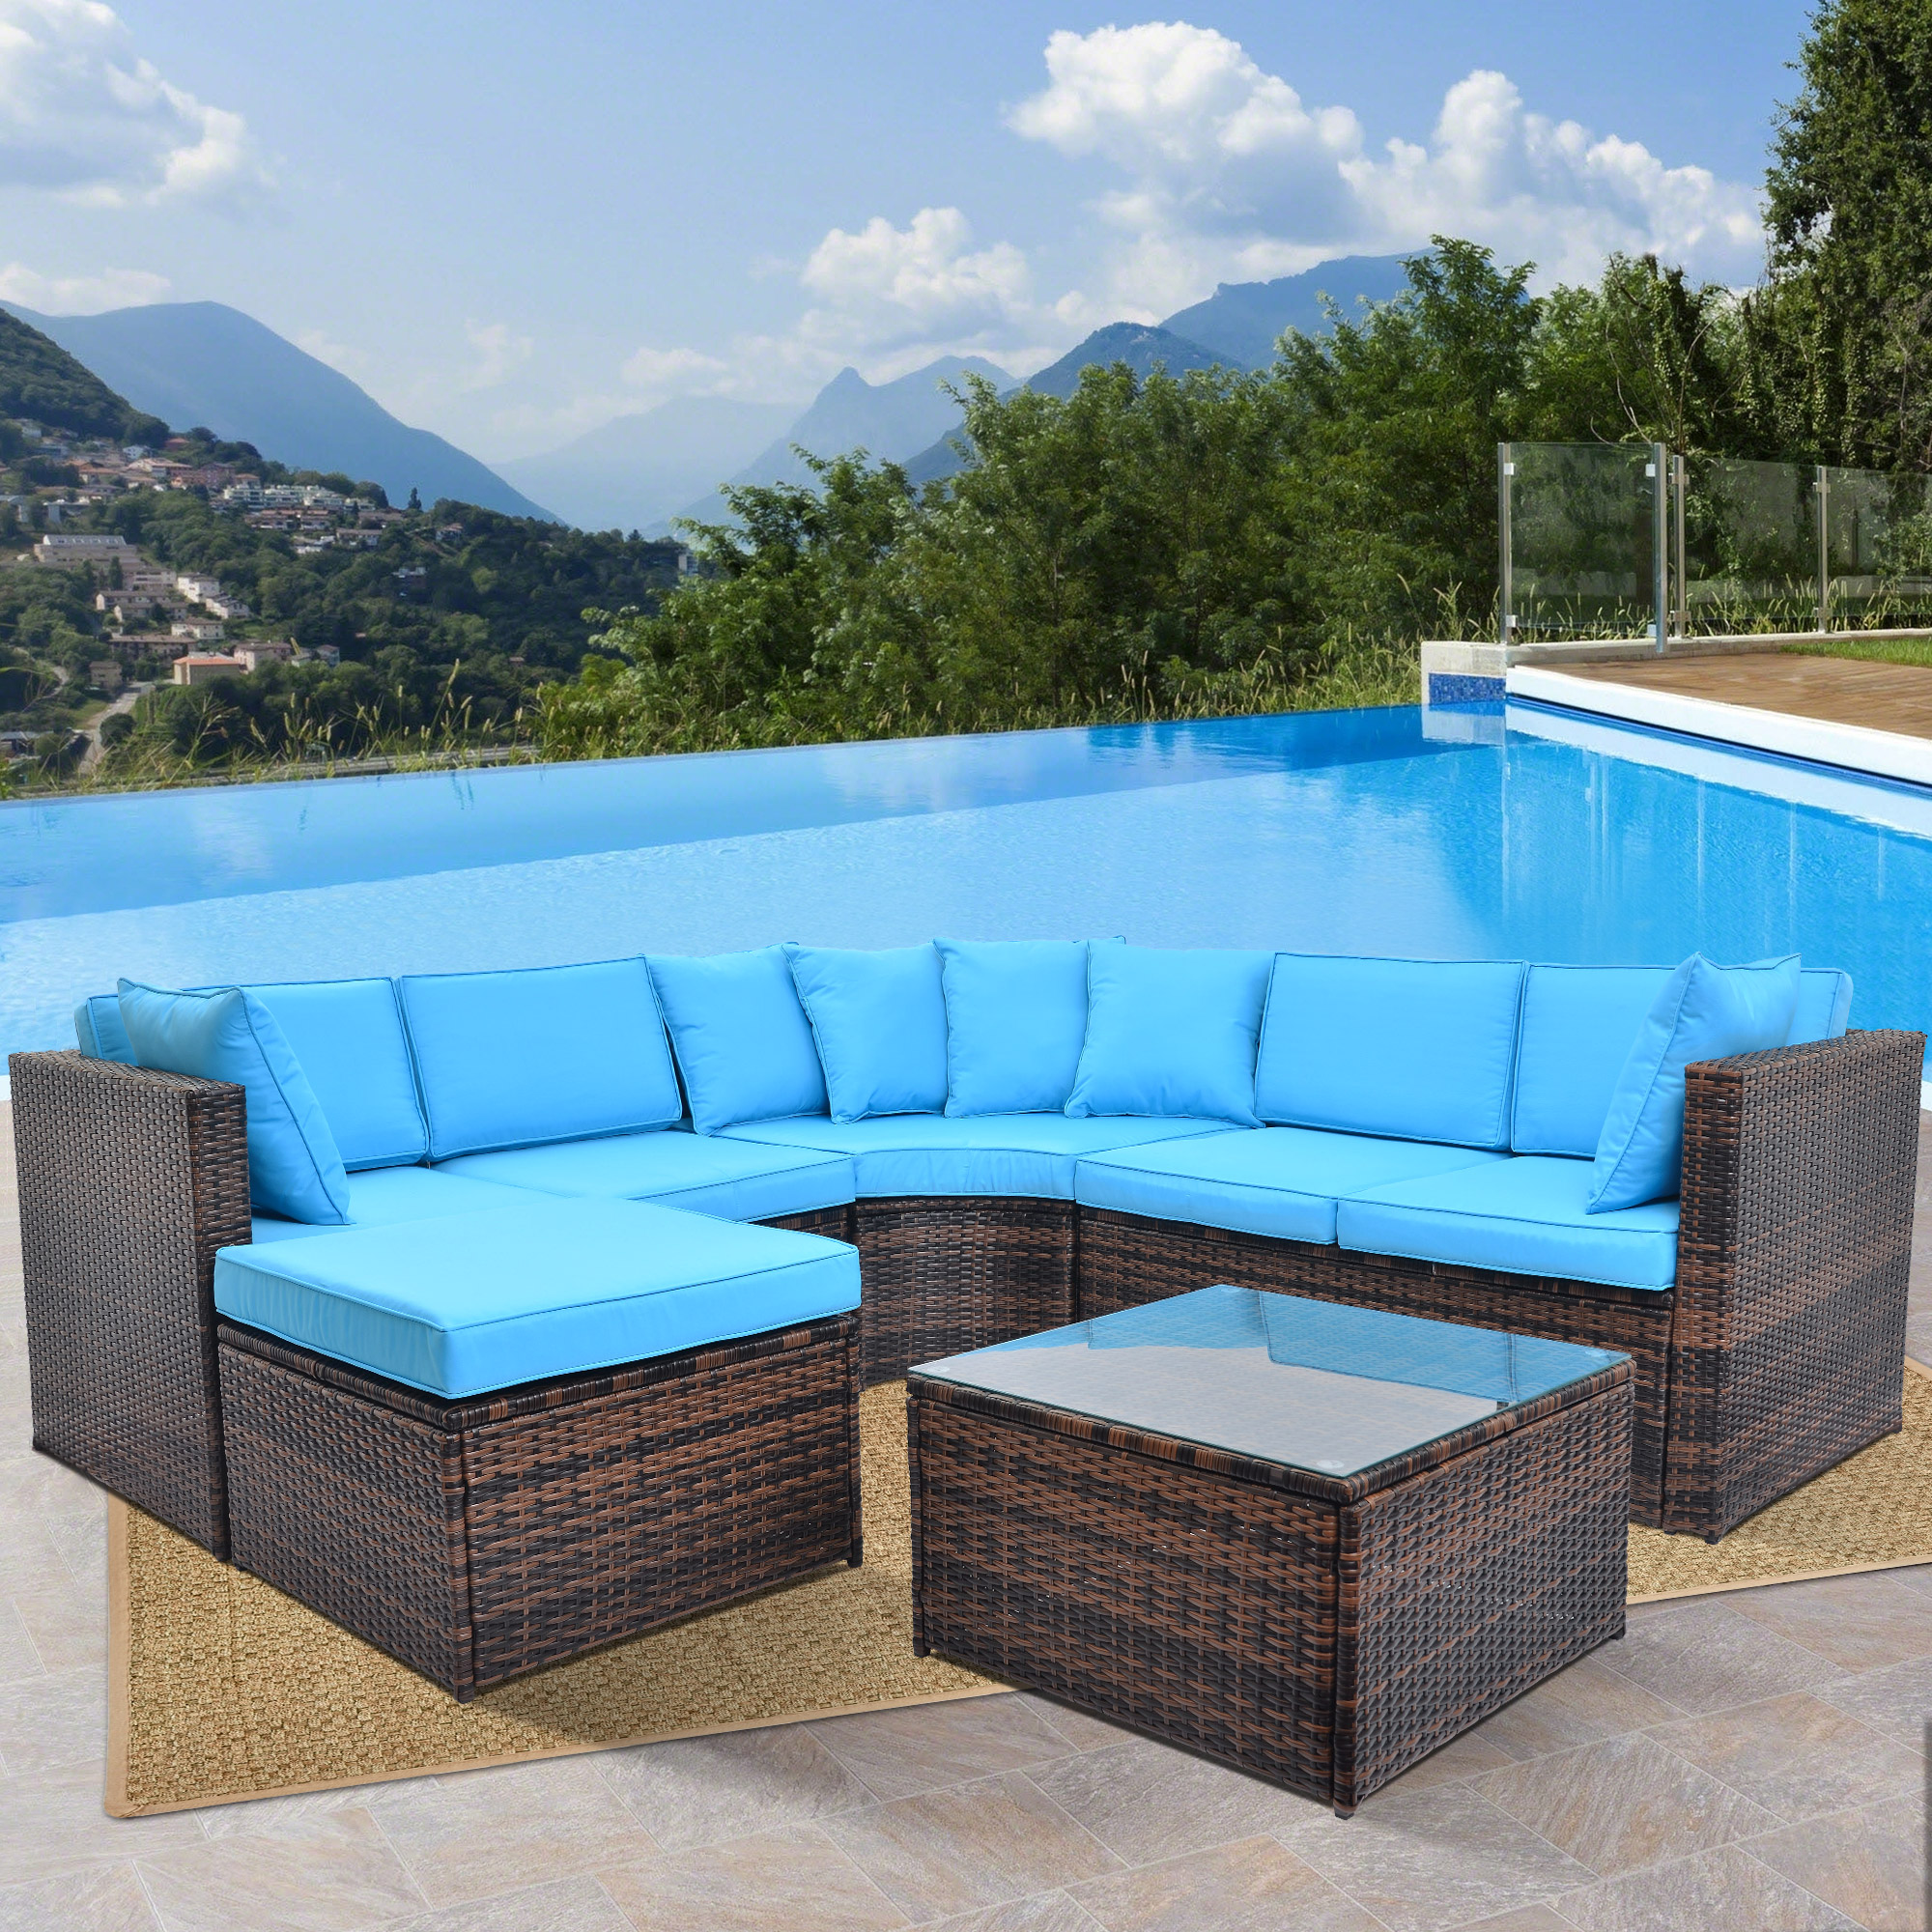 jumper 5 pcs patio furniture set outdoor sectional conversation set with soft cushions cushion blue